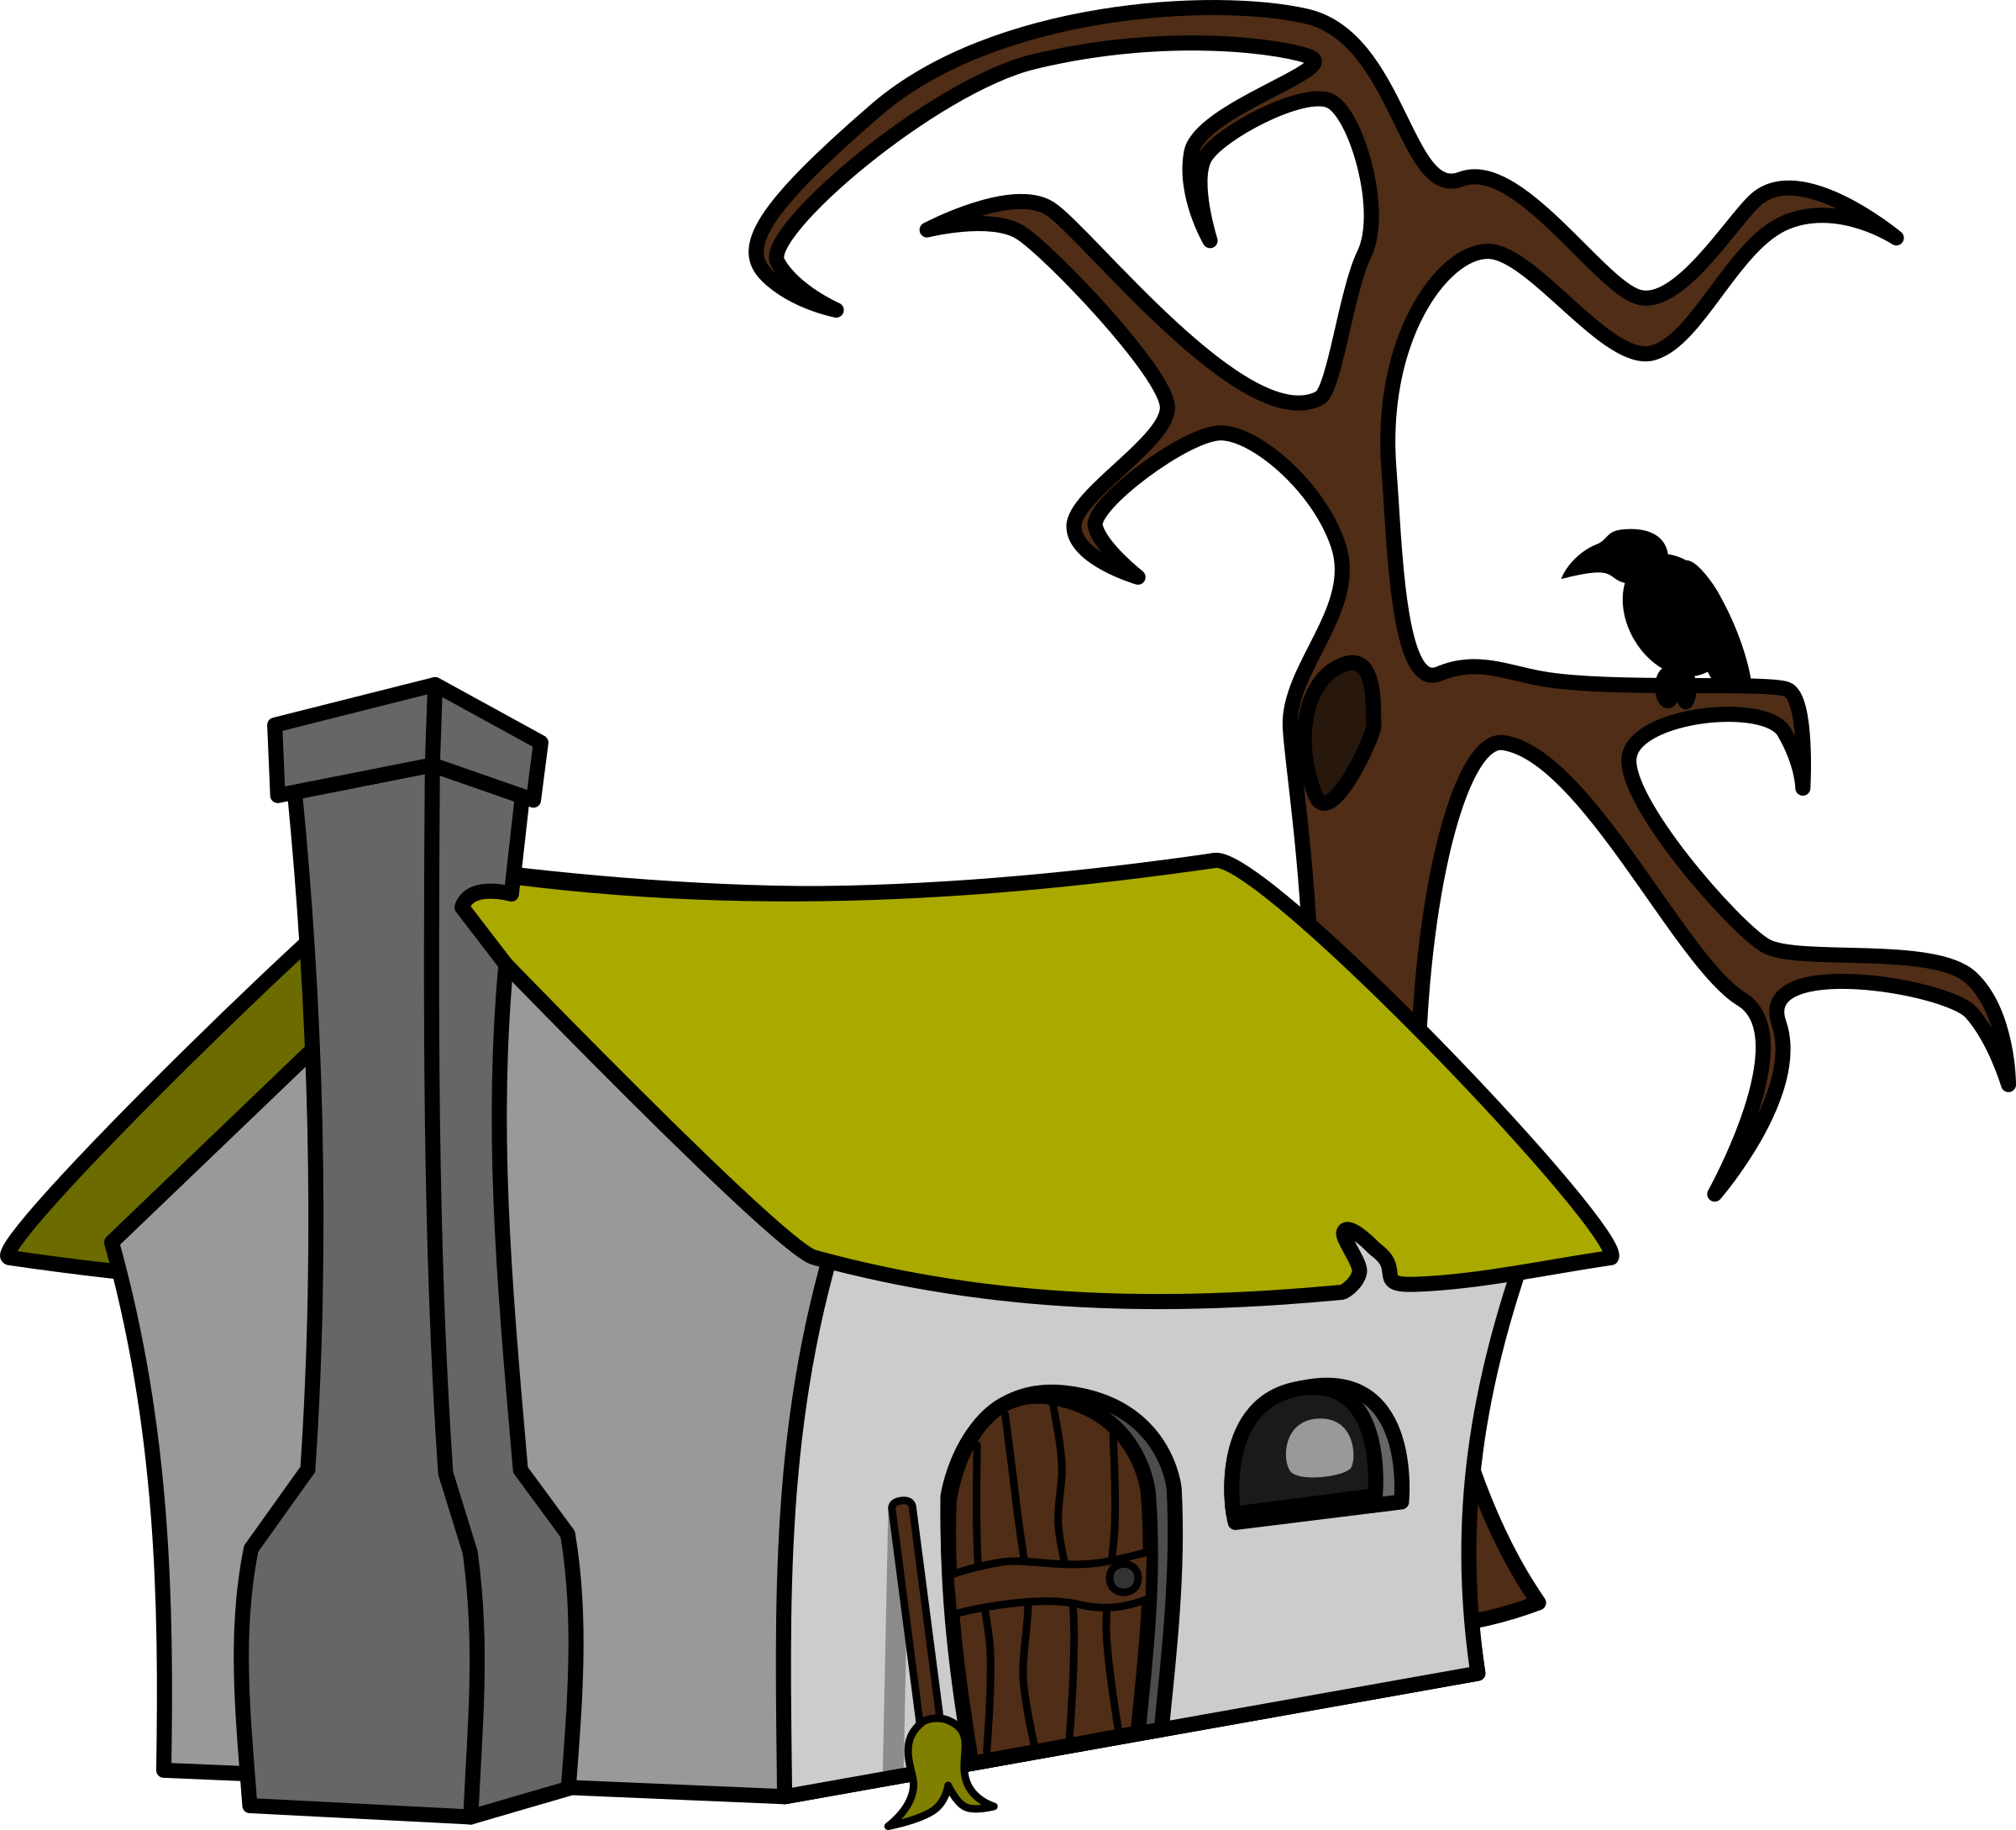 Witch's cottage by lemmling